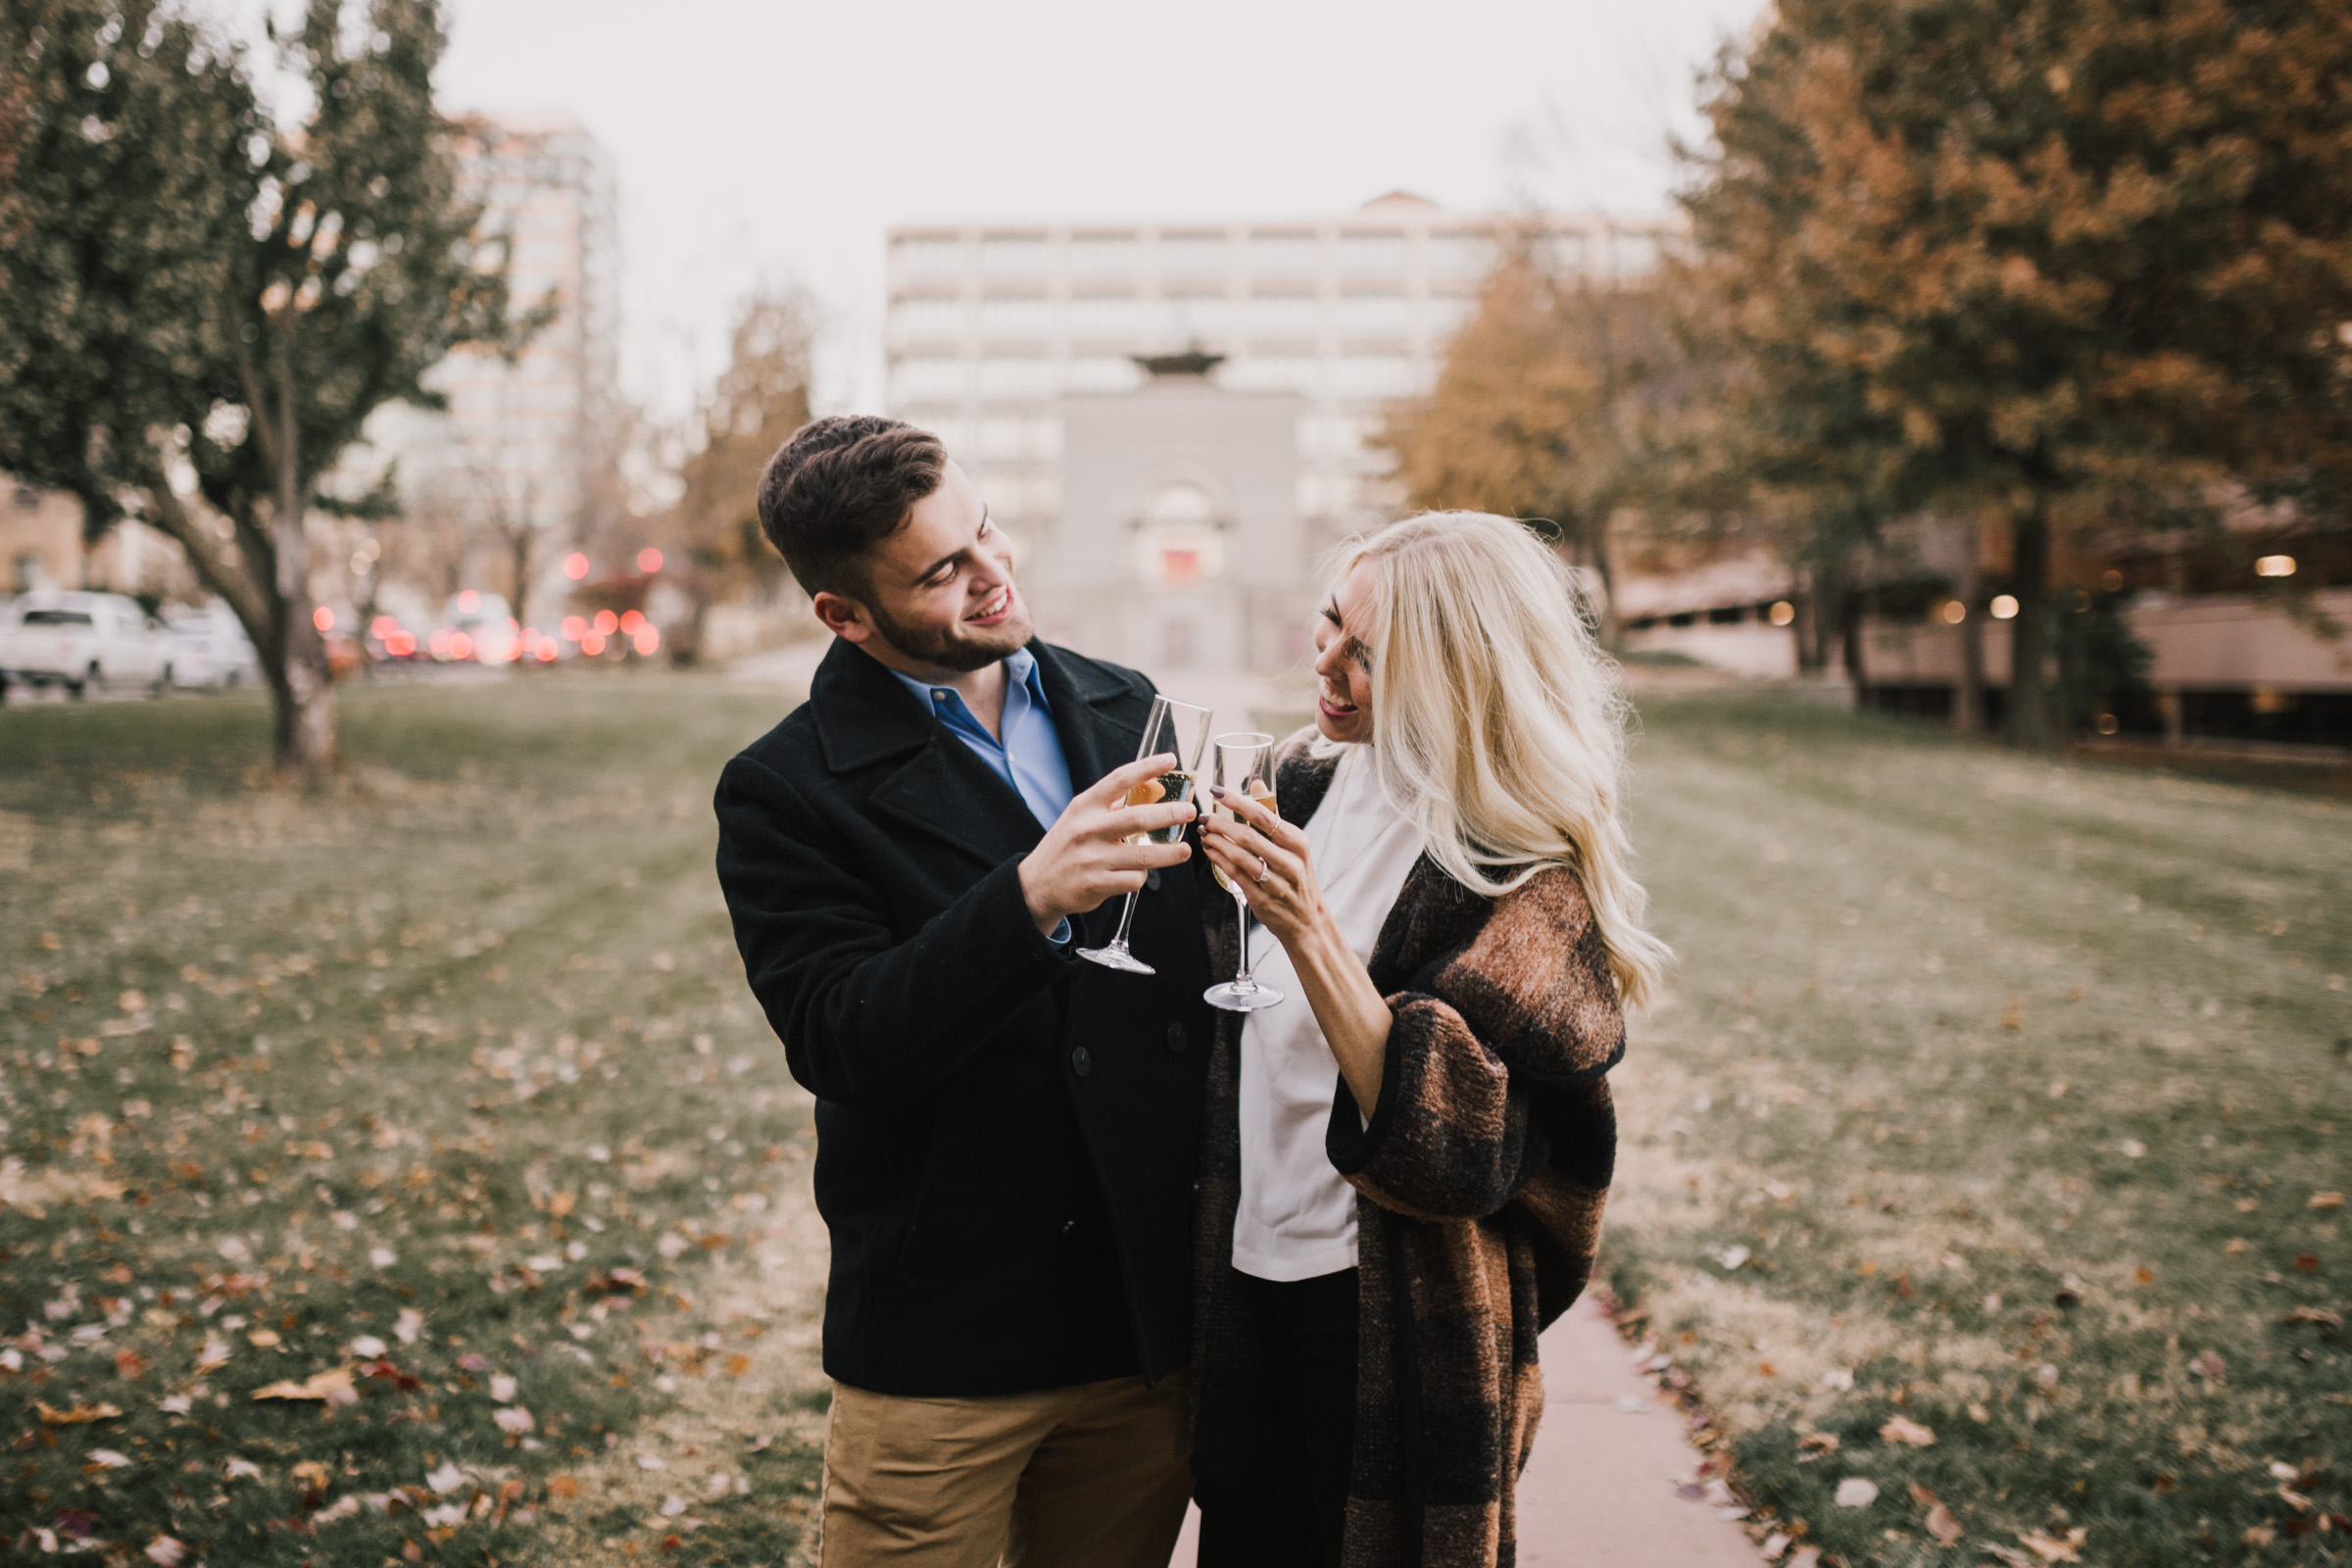 alyssa barletter photography proposal country club plaza park fall engagement how he asked she said yes-15.jpg